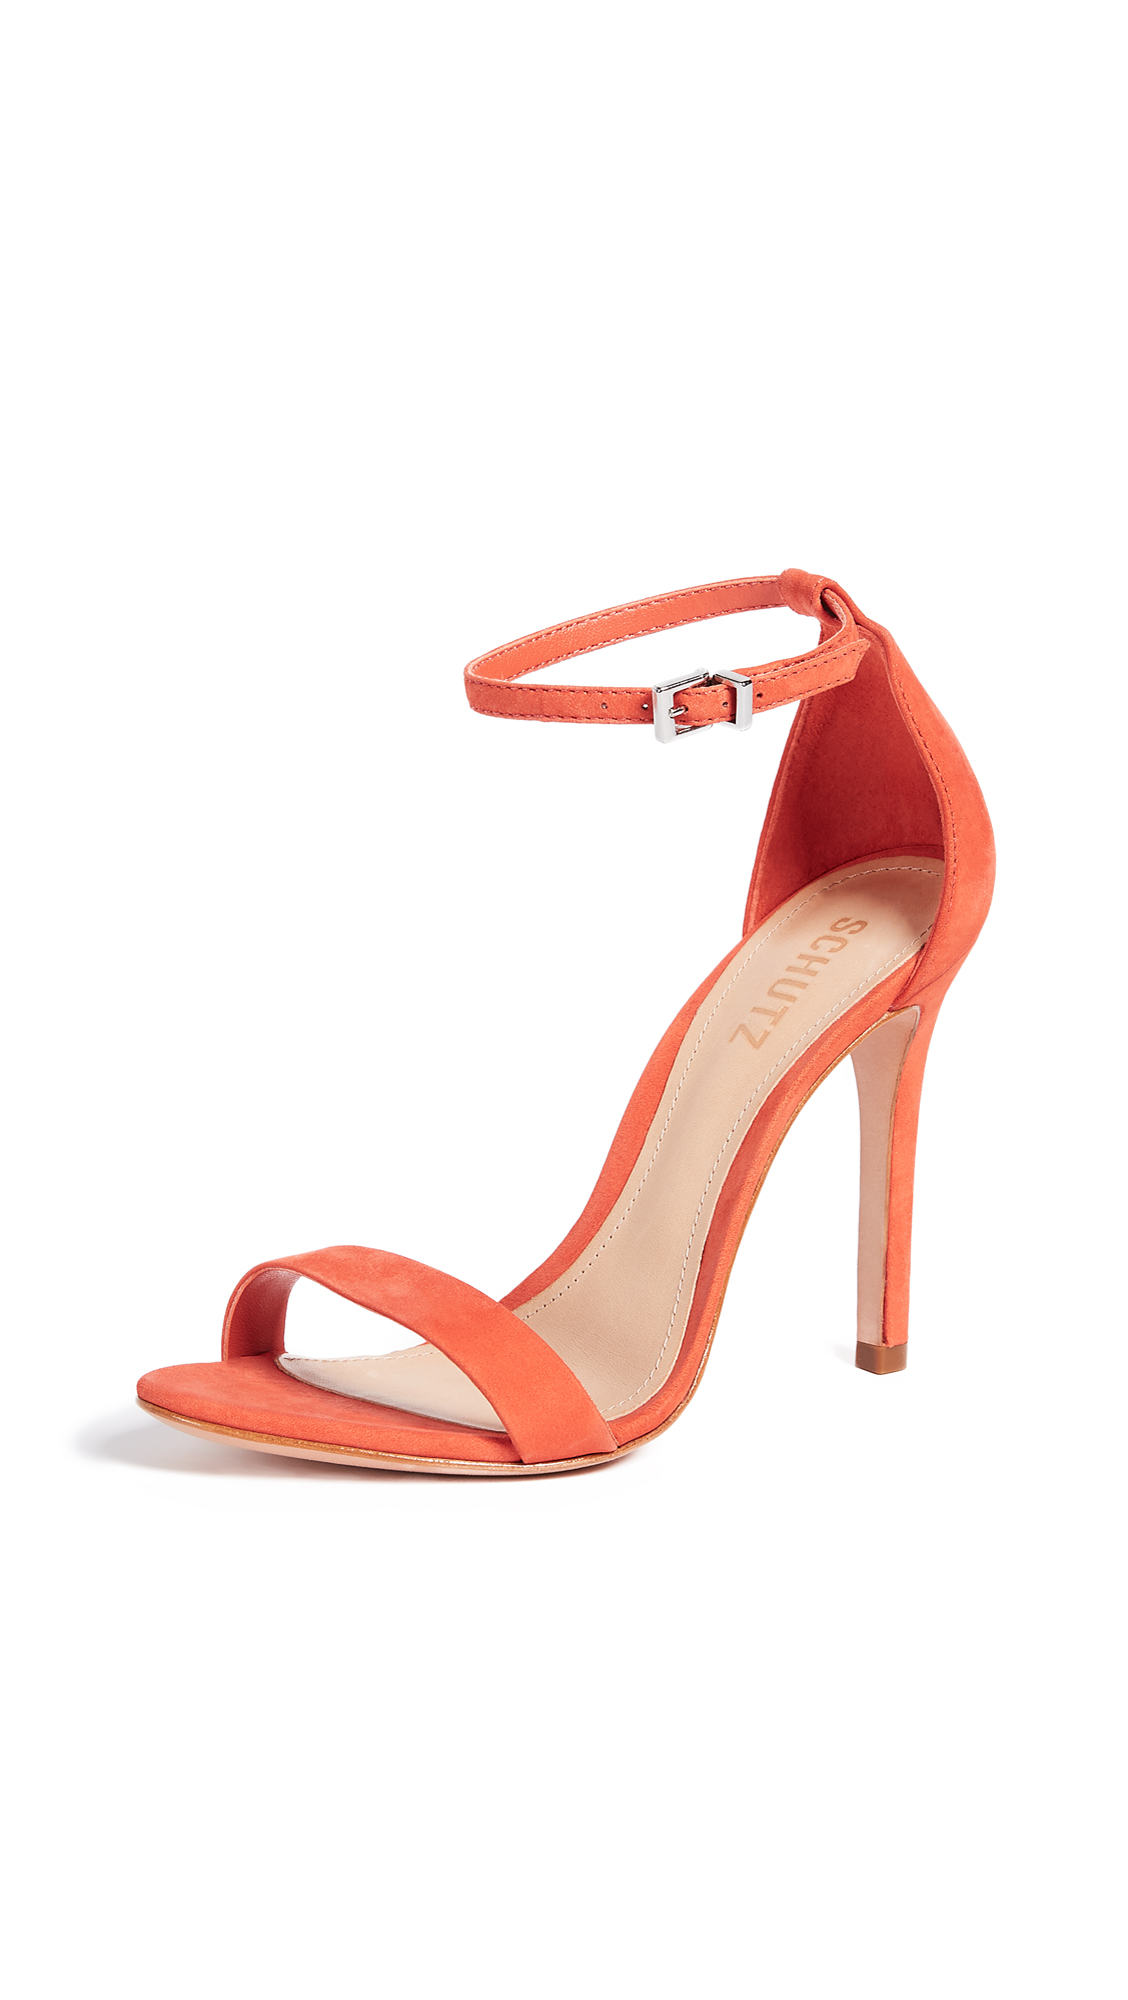 Schutz Cadey Lee Sandals - Bright Orange